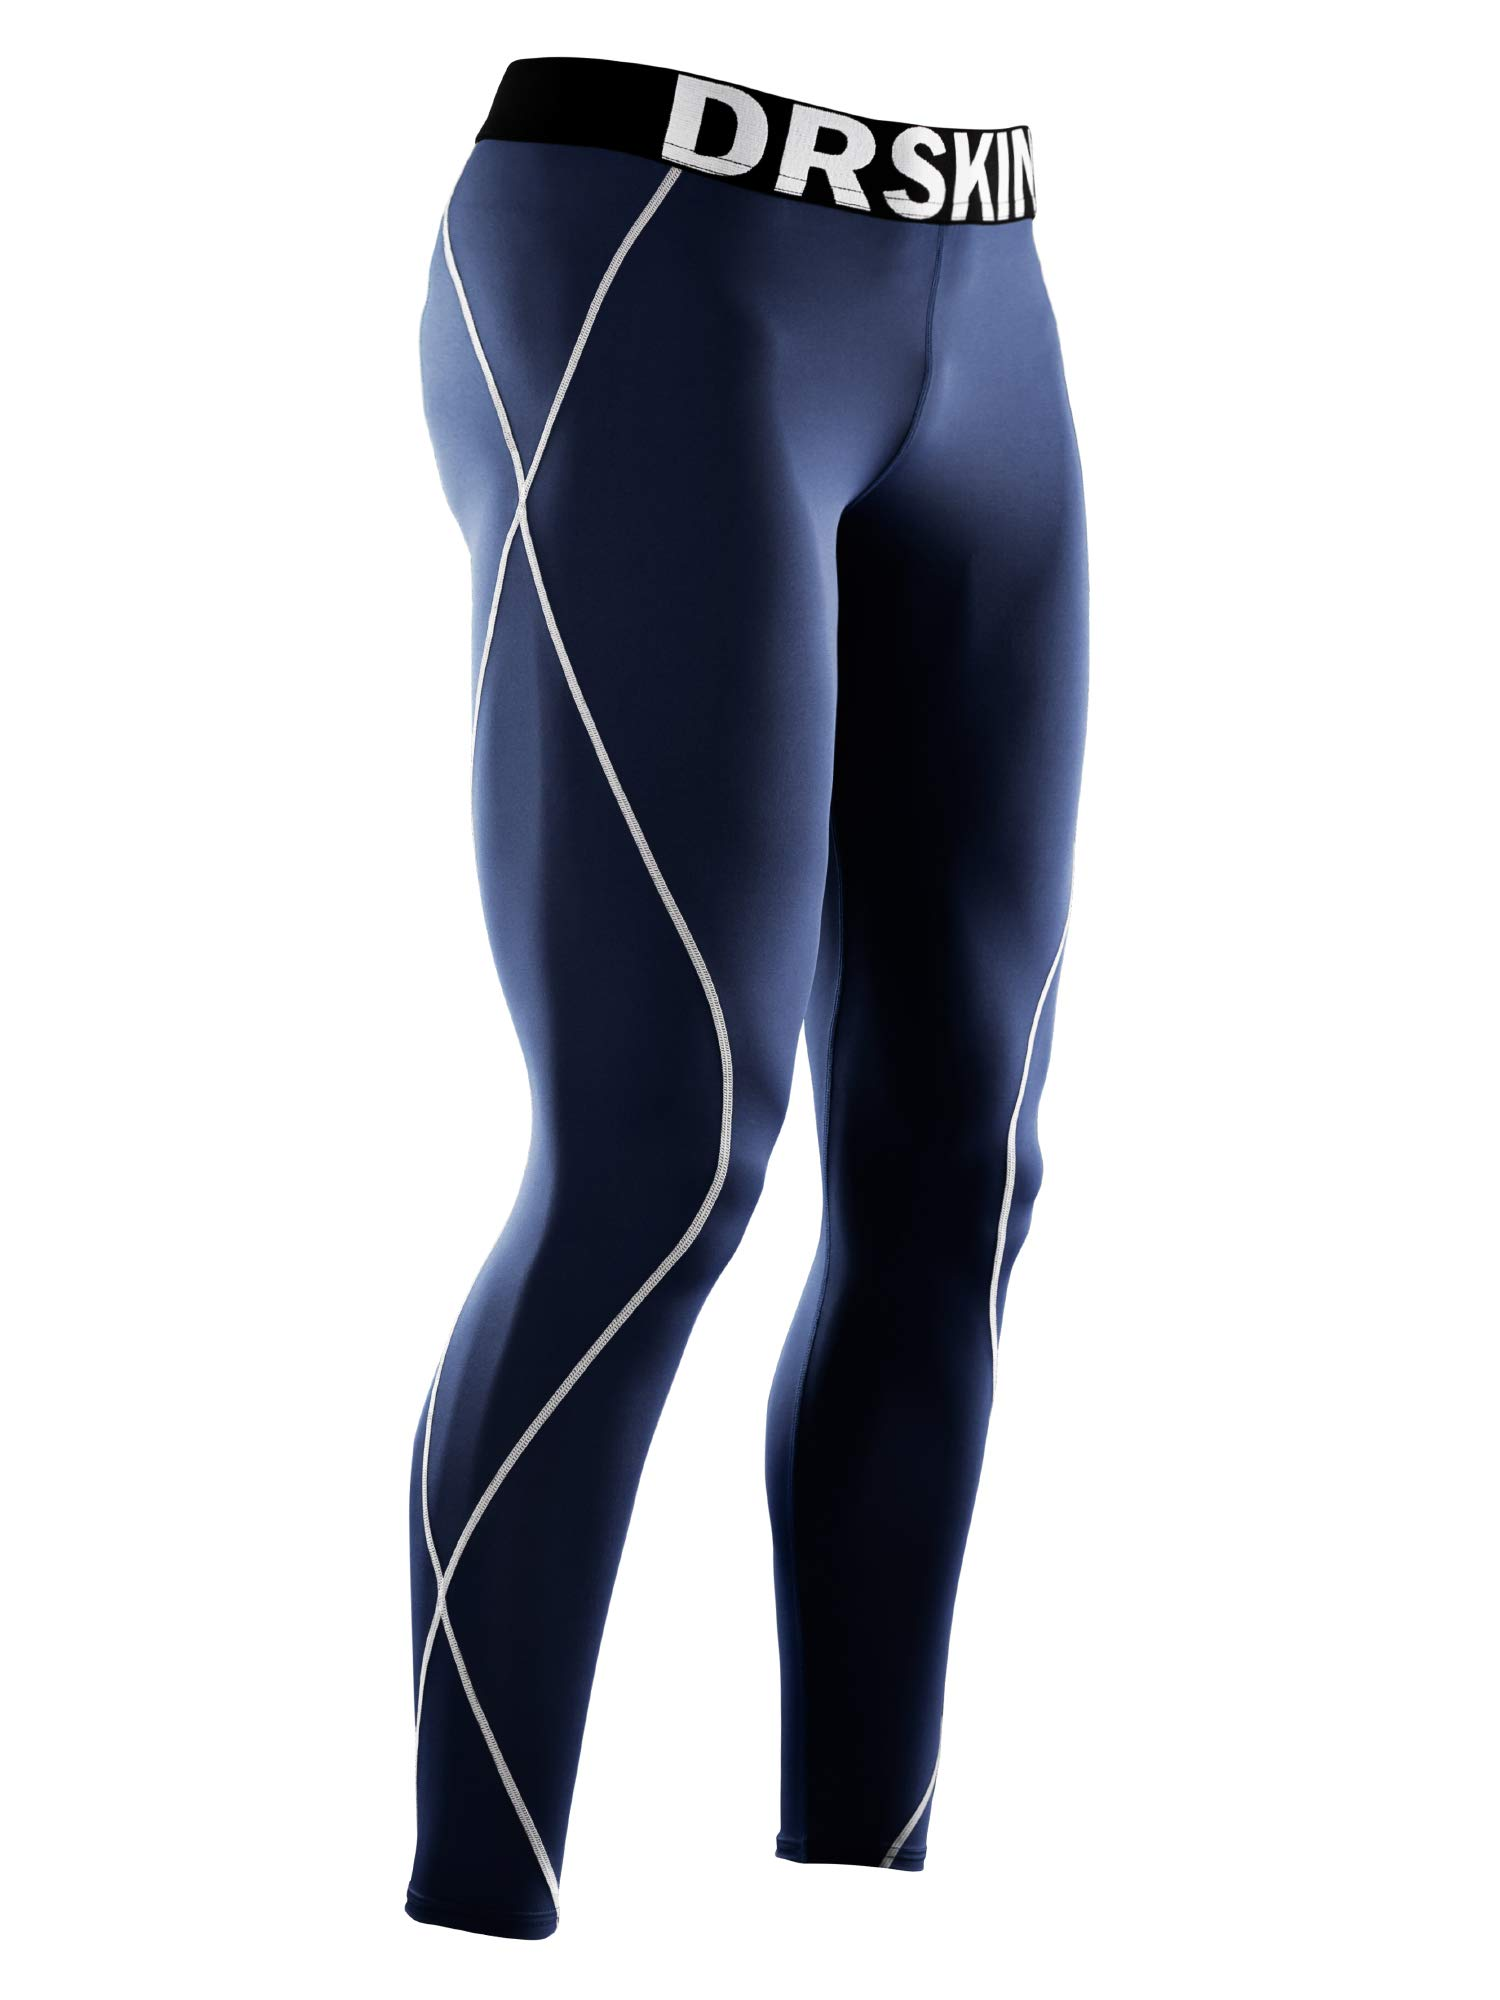 DRSKIN Compression Cool Dry Sports Tights Pants Baselayer Running Leggings Yoga Rashguard Men (DN02, 3S) Navy by DRSKIN